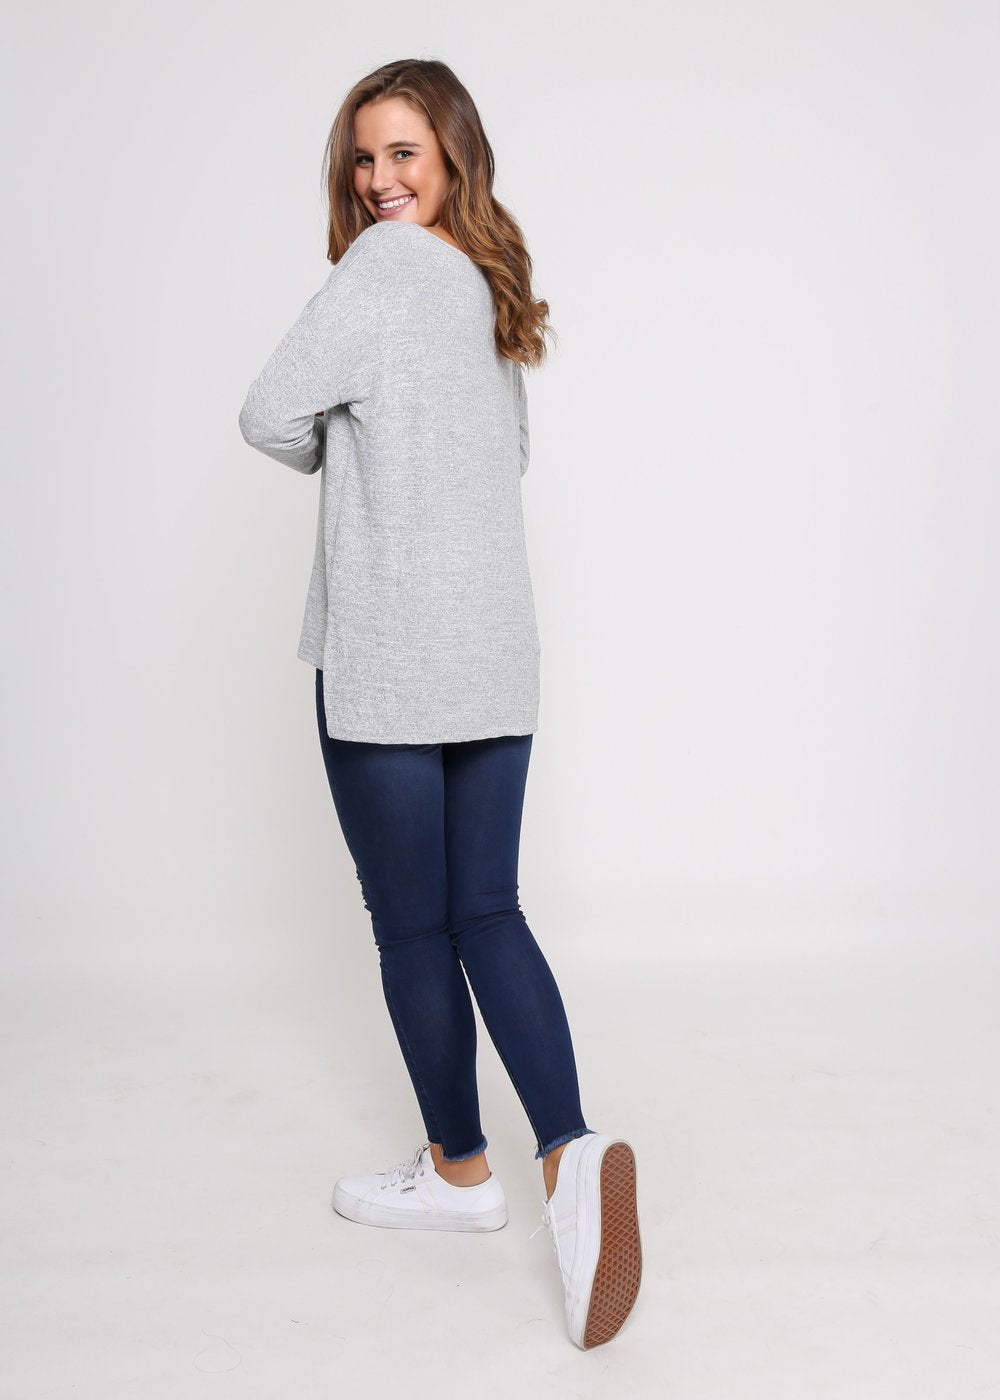 Milly Knit Top - Grey Marle - Kenzie Tenzie